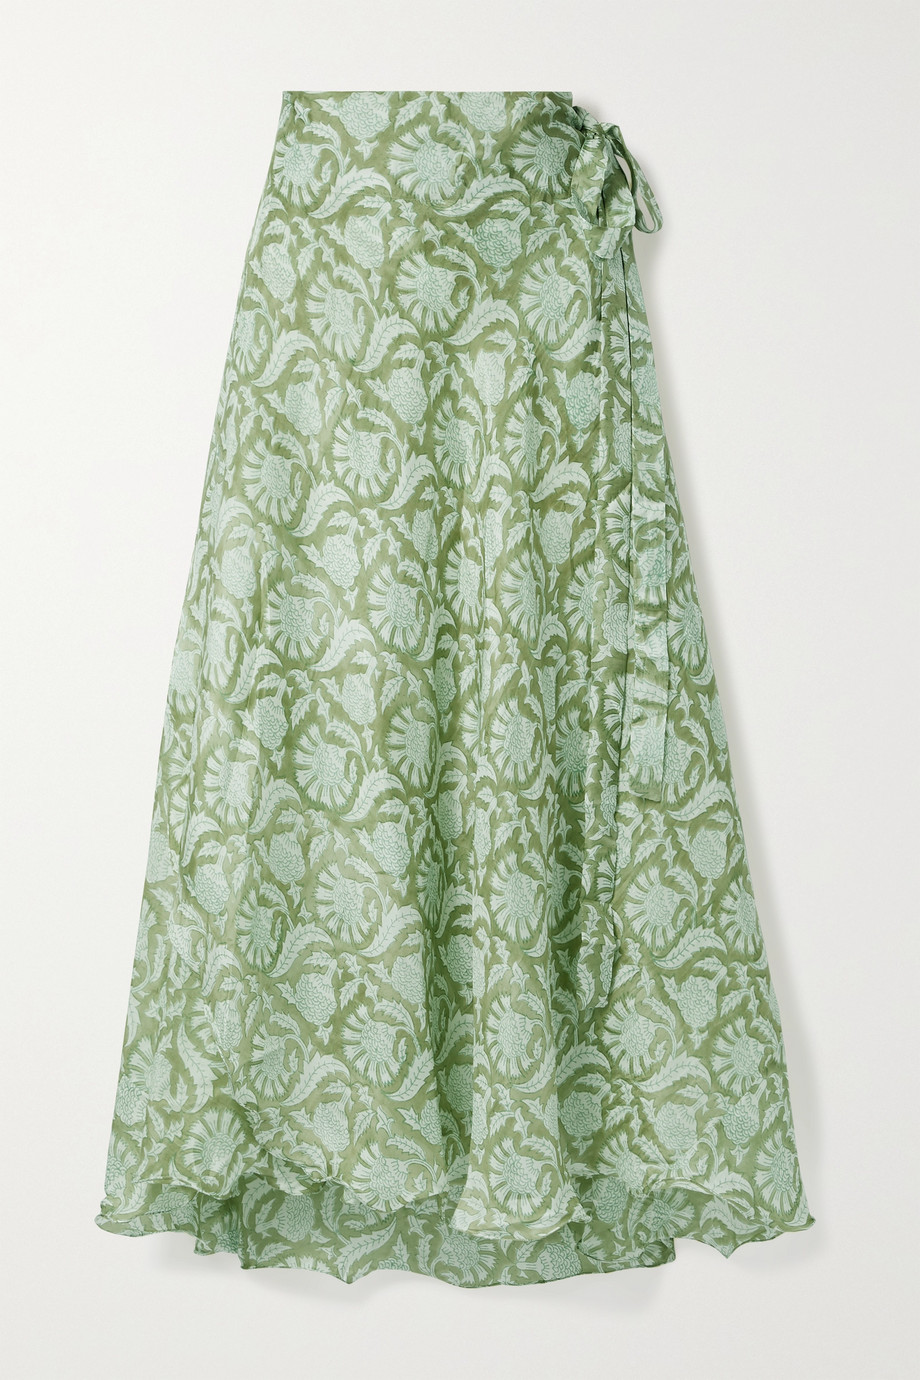 HANNAH ARTWEAR + NET SUSTAIN Maya printed silk wrap maxi skirt